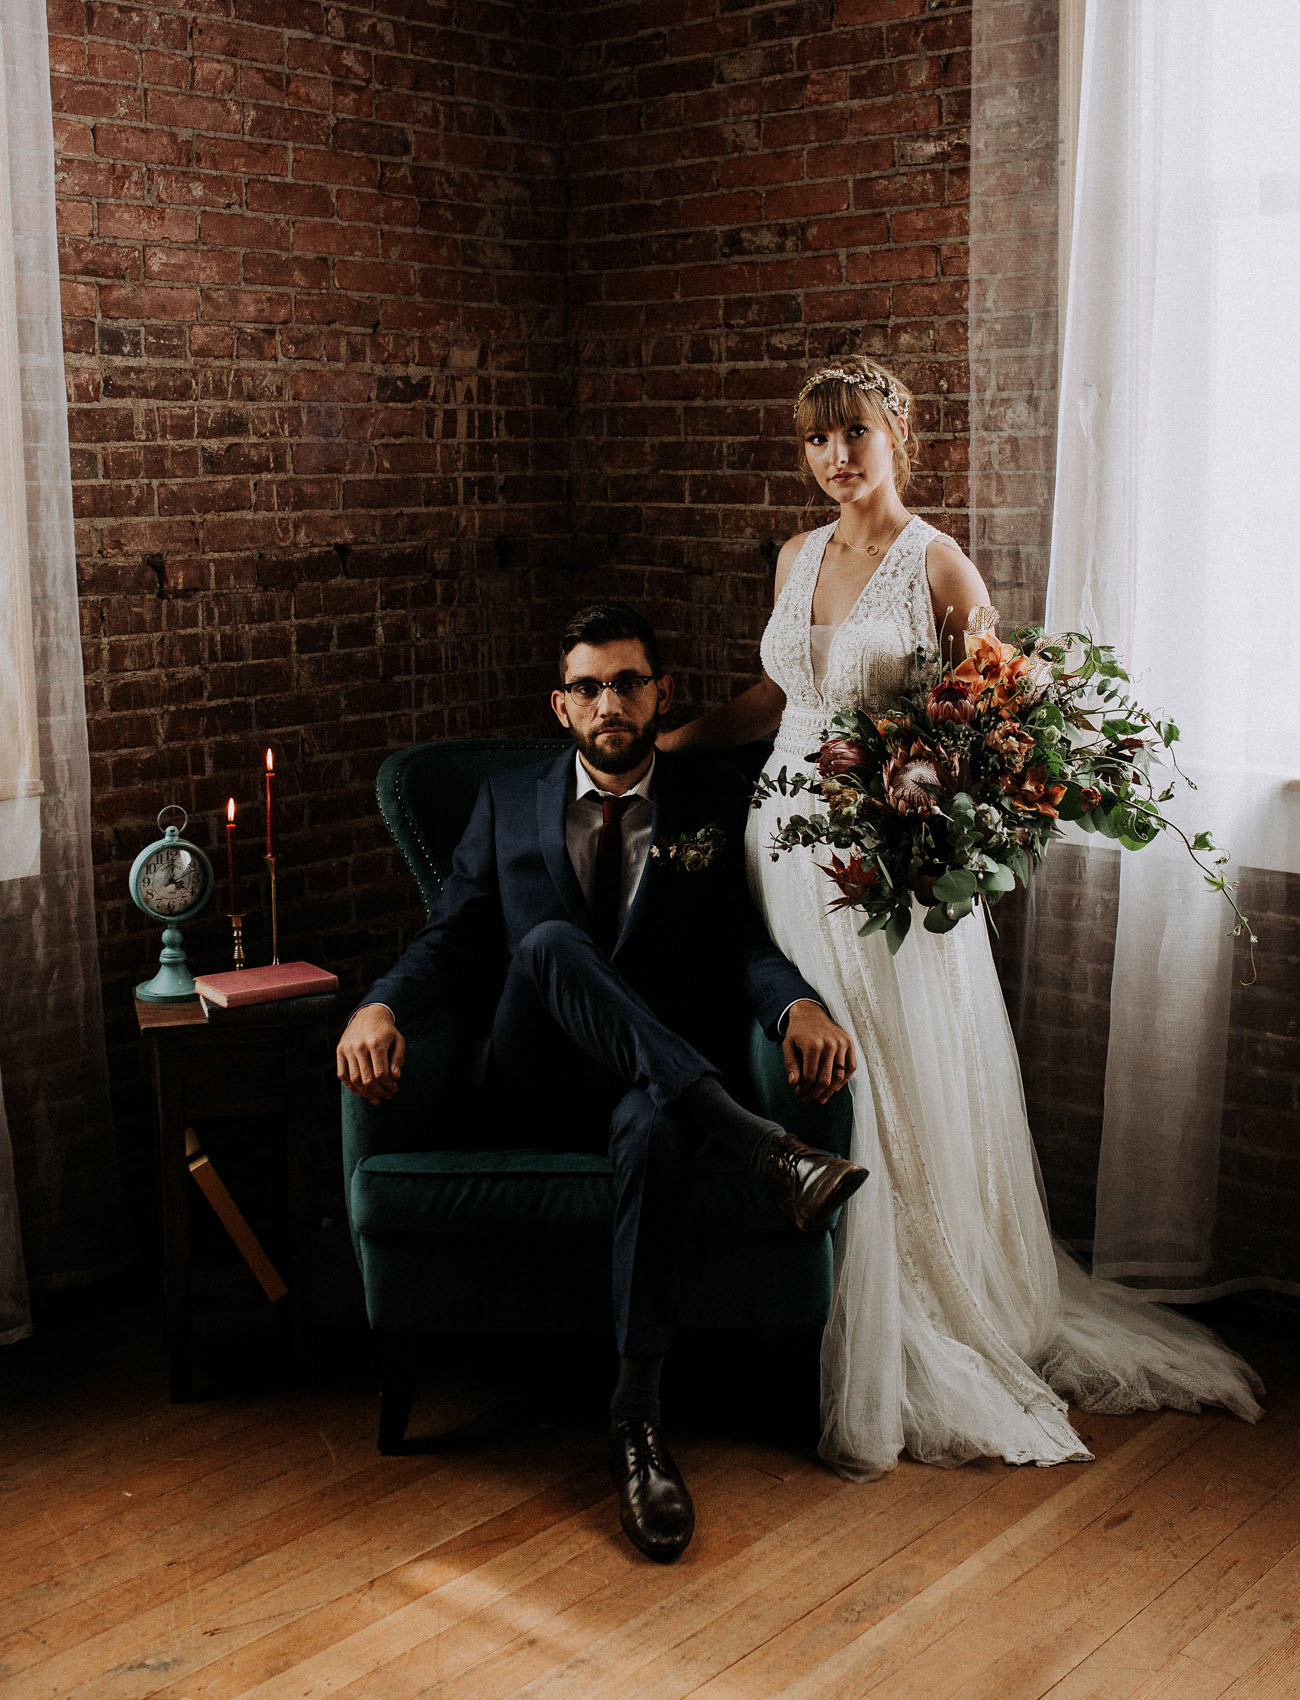 Styled Shoot Turned Surprise Elopement